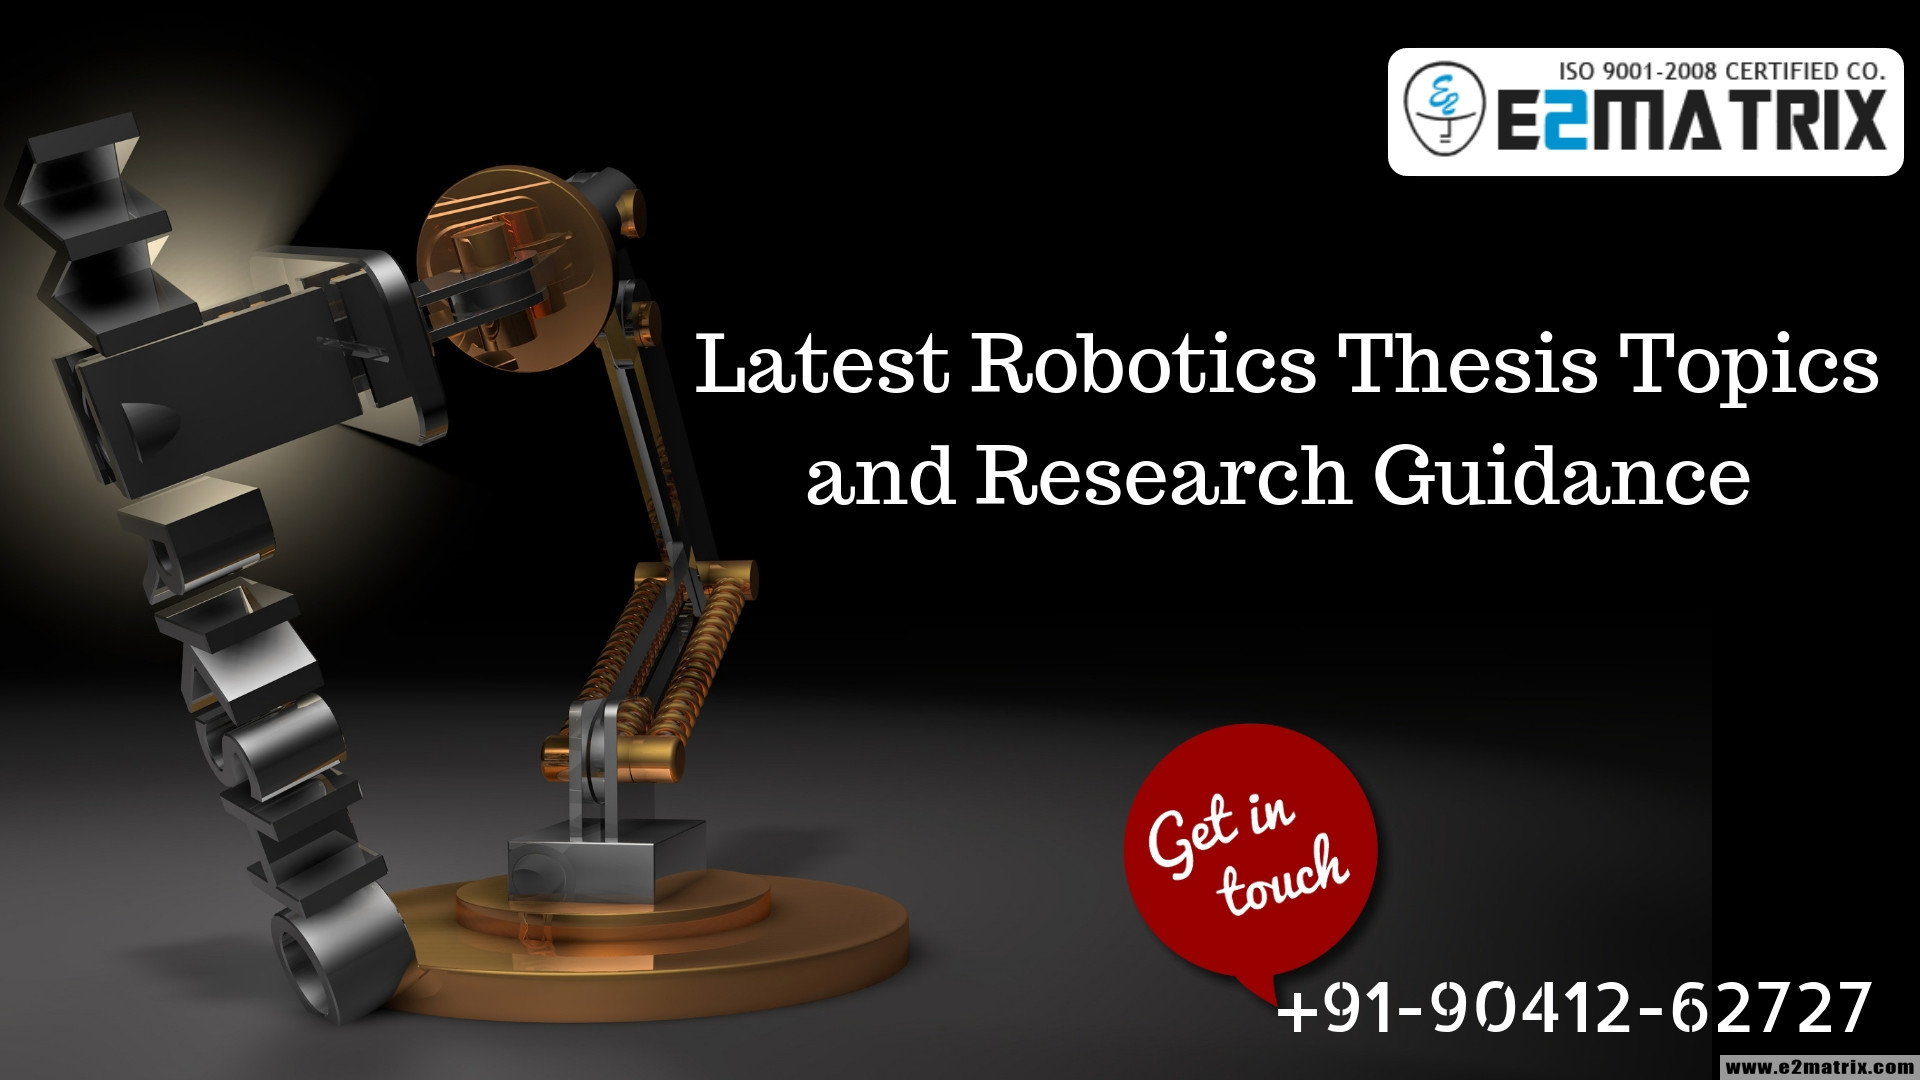 Latest Robotics Thesis topics help and Research Guidance